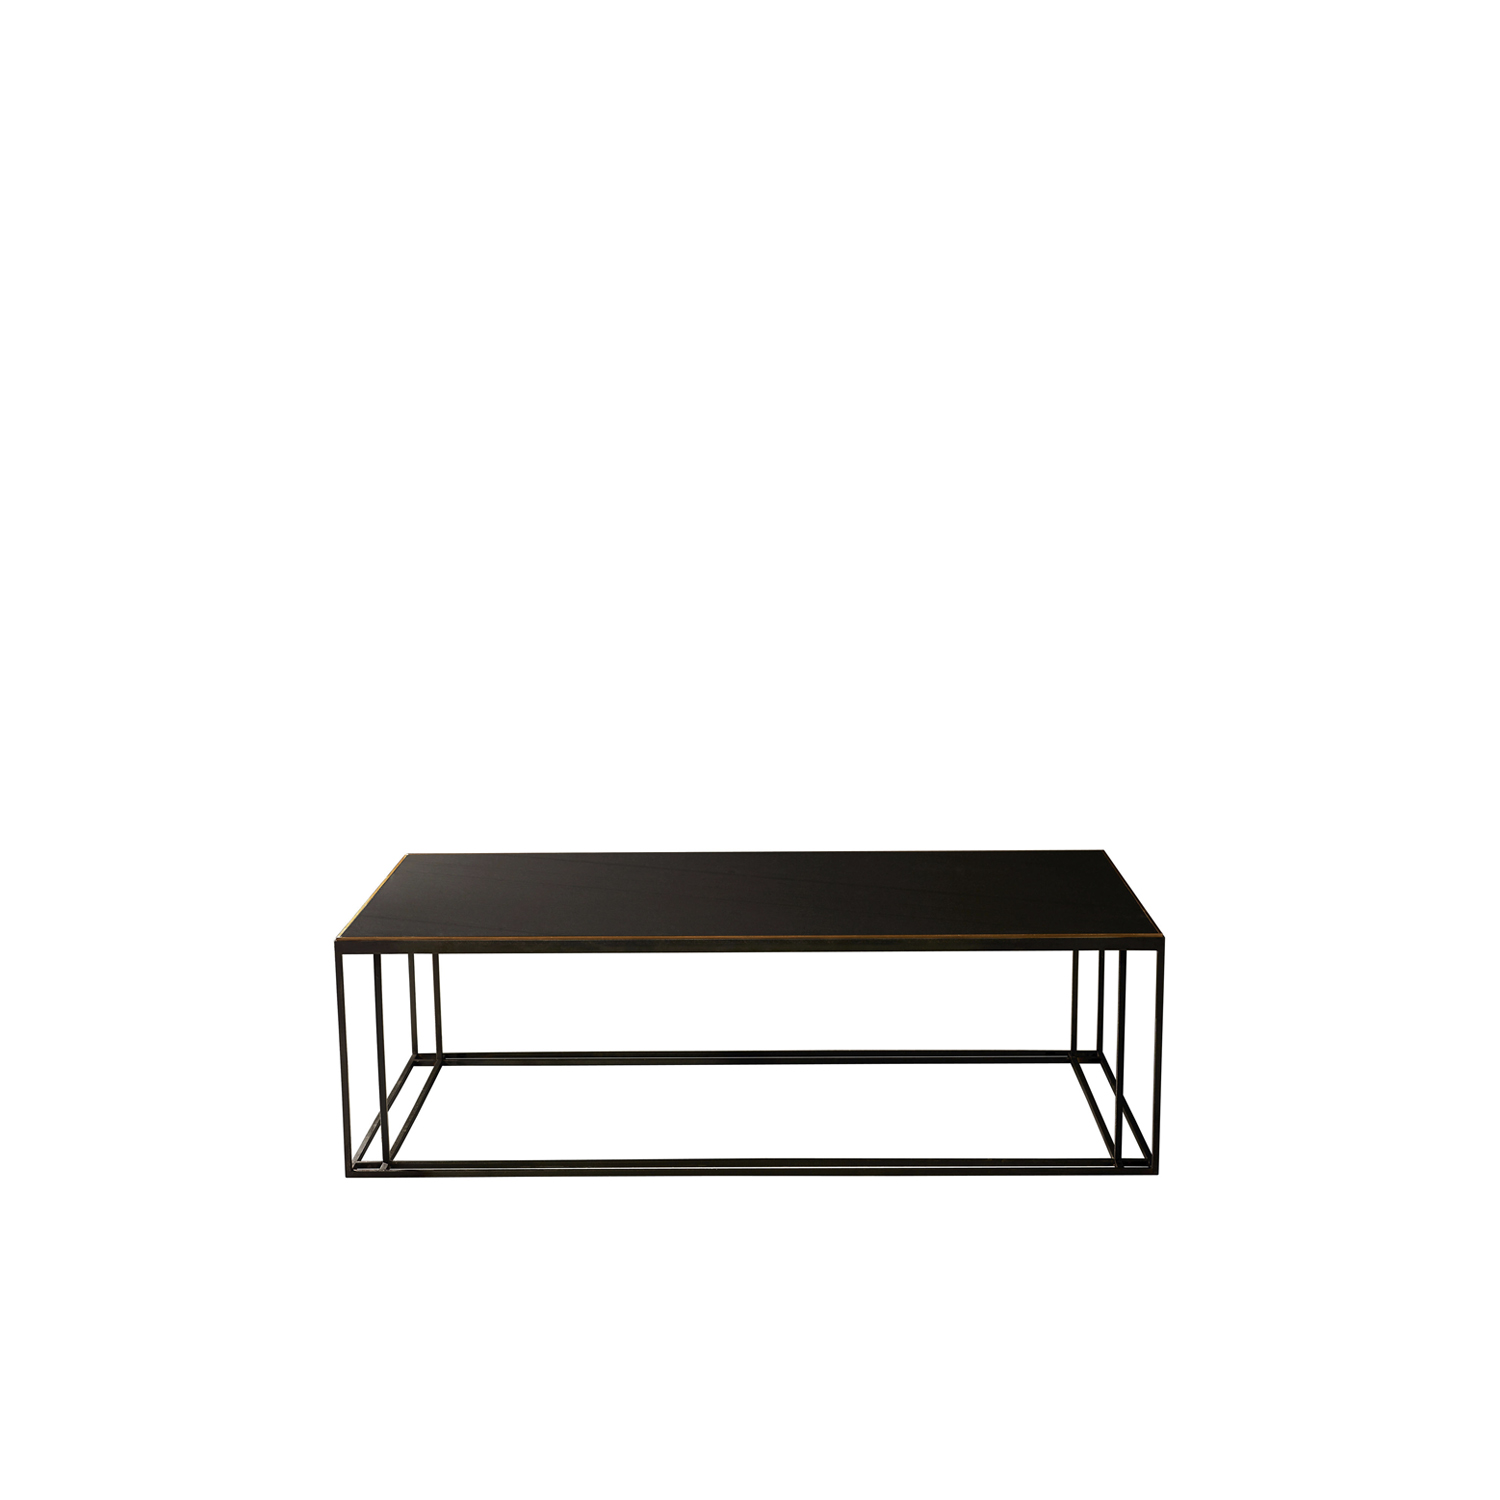 Slate Binate Coffee Table - This coffee table is the perfect height to be in the centre of a lounge or living room or in a casual commercial area. The choice of finishes means that you can choose the best one to suit your space. The frame is Blackened Steel and the Top is honed Cumbrian Slate, with a Polished Brass Trim. This table is hand made and crafted in the North of England to order. Custom sizes and finishes are available.  | Matter of Stuff